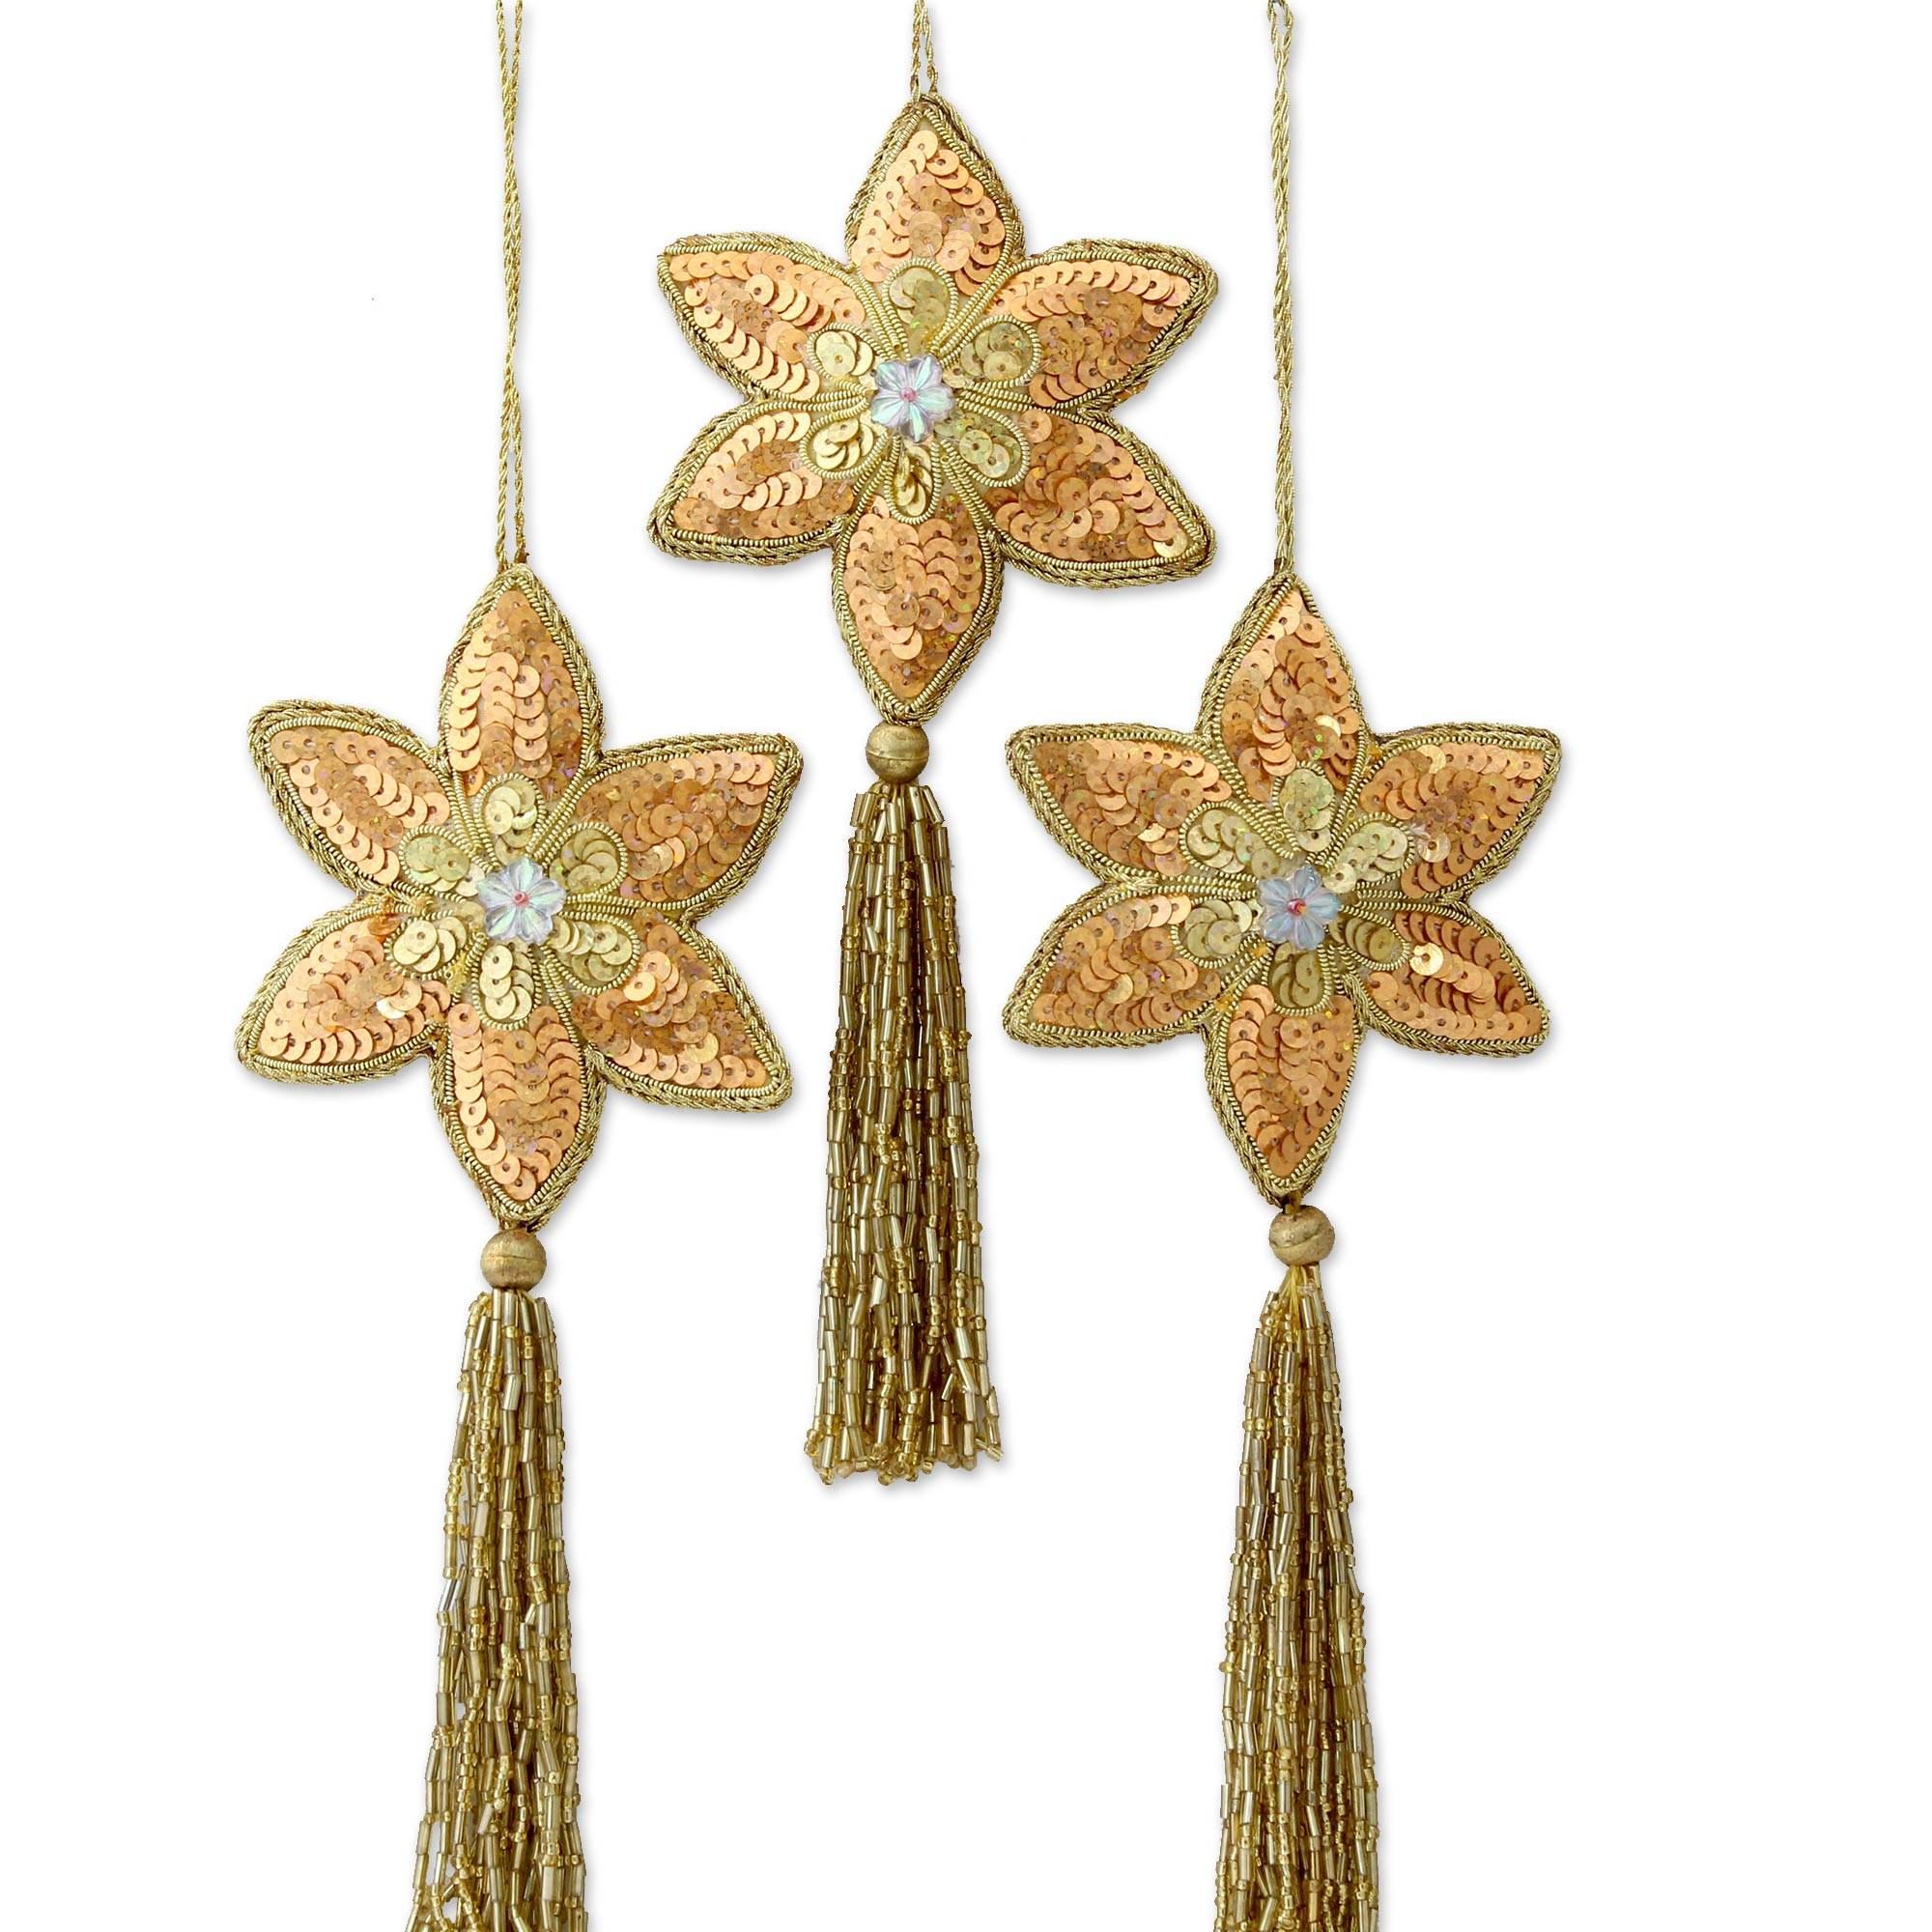 Beaded Christmas Ornaments.Three Gold Poinsettia Handcrafted Beaded Christmas Ornaments Golden Poinsettia